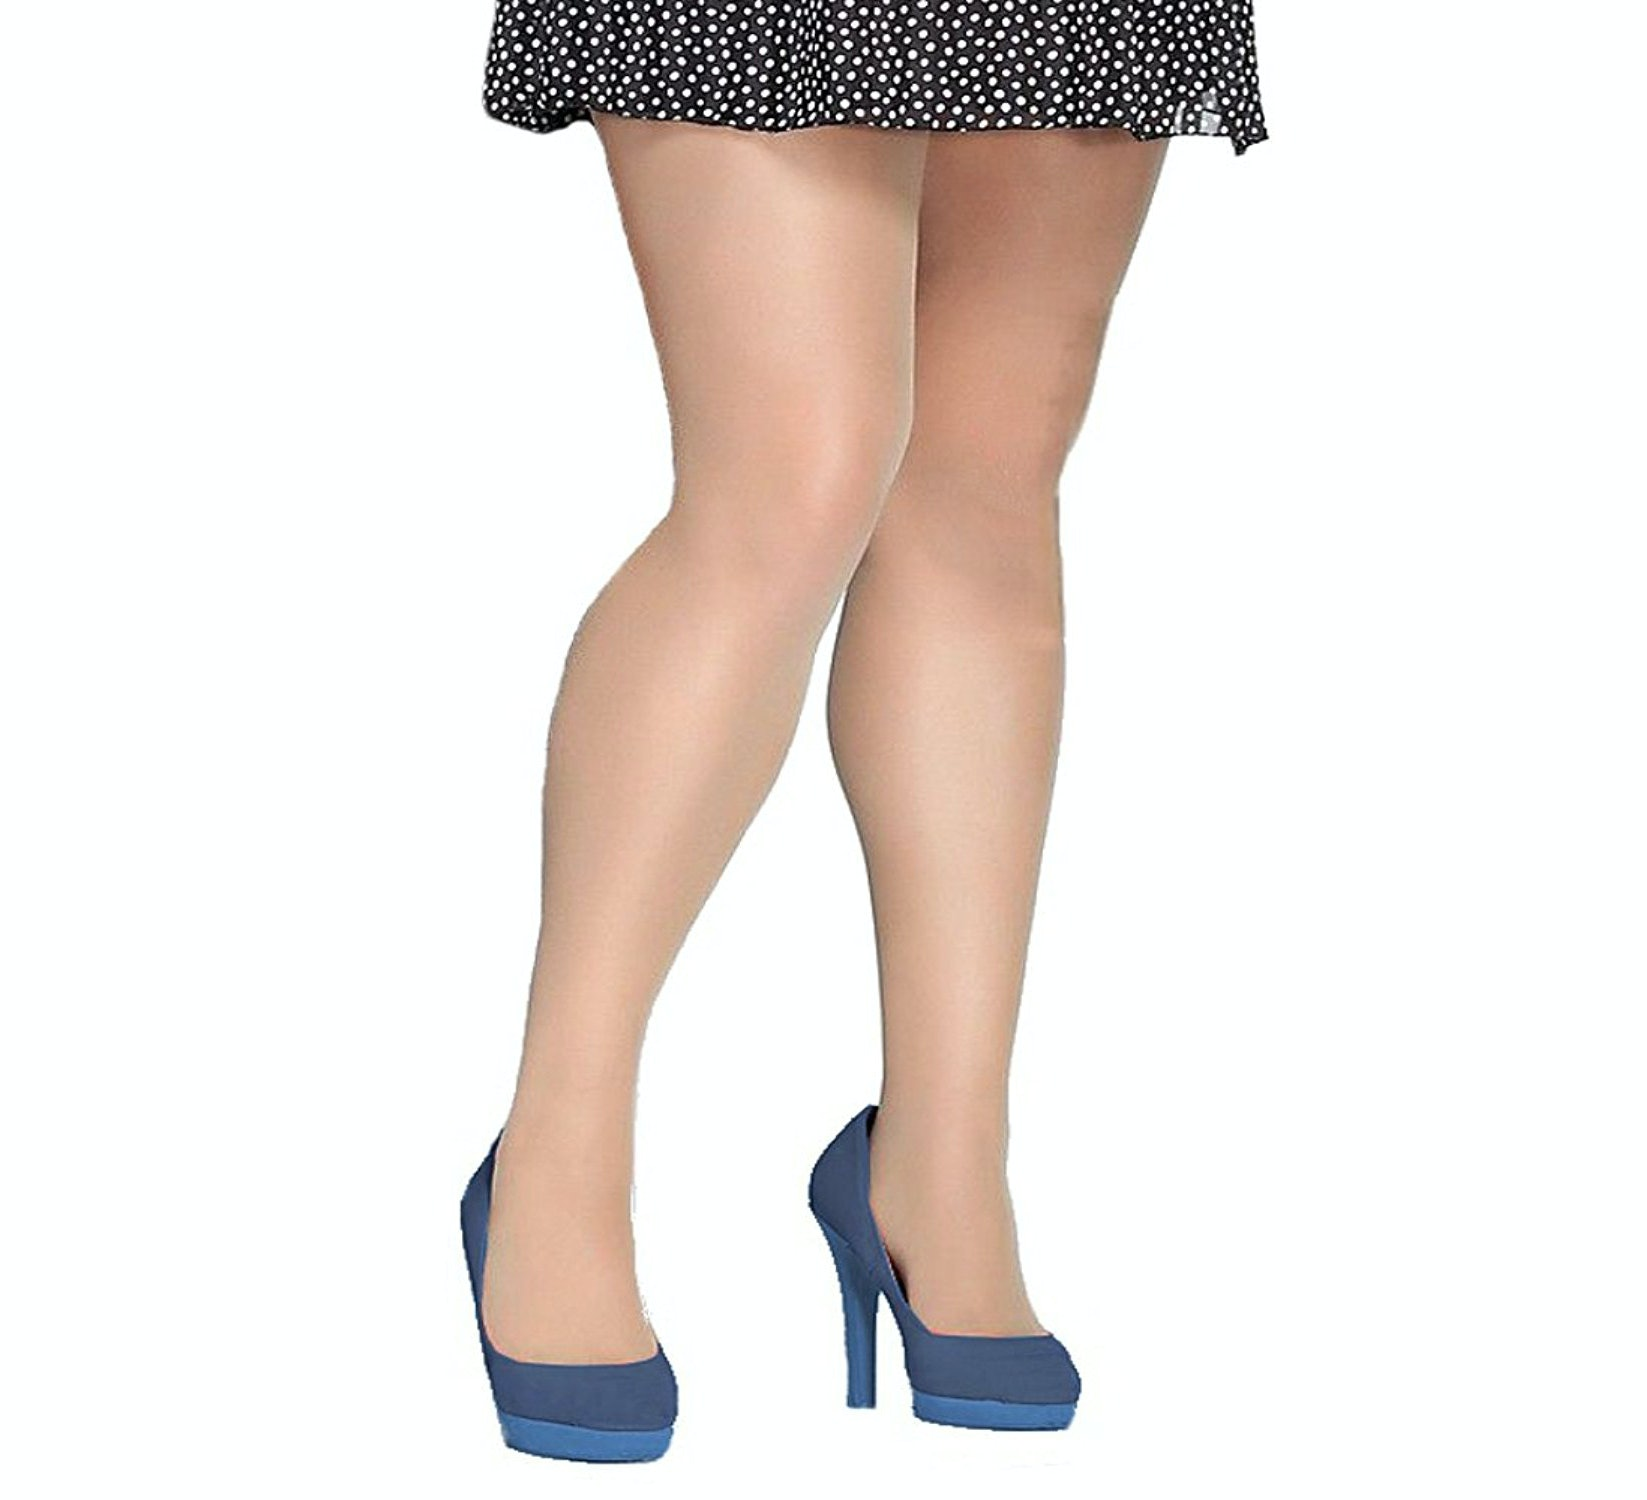 77f9cdb83 The 12 Best Plus Size Tights That Won t Slip Down